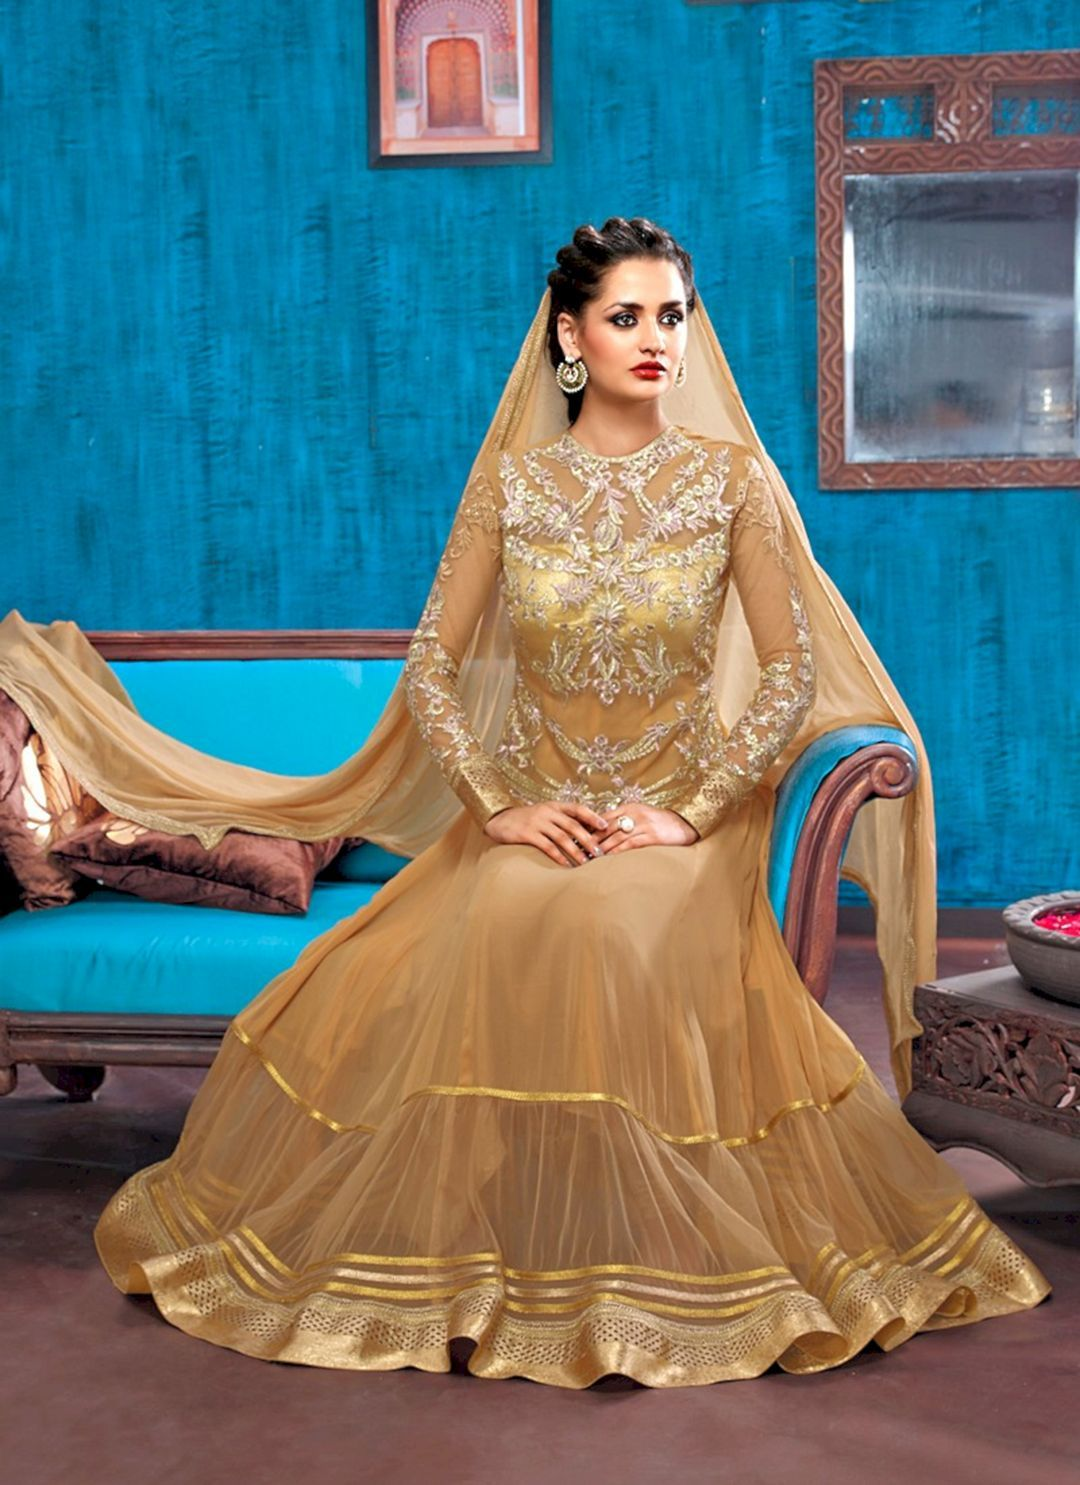 30+ Luxurious Golden Wedding Gown Ideas For Bride Looks More Pretty ...